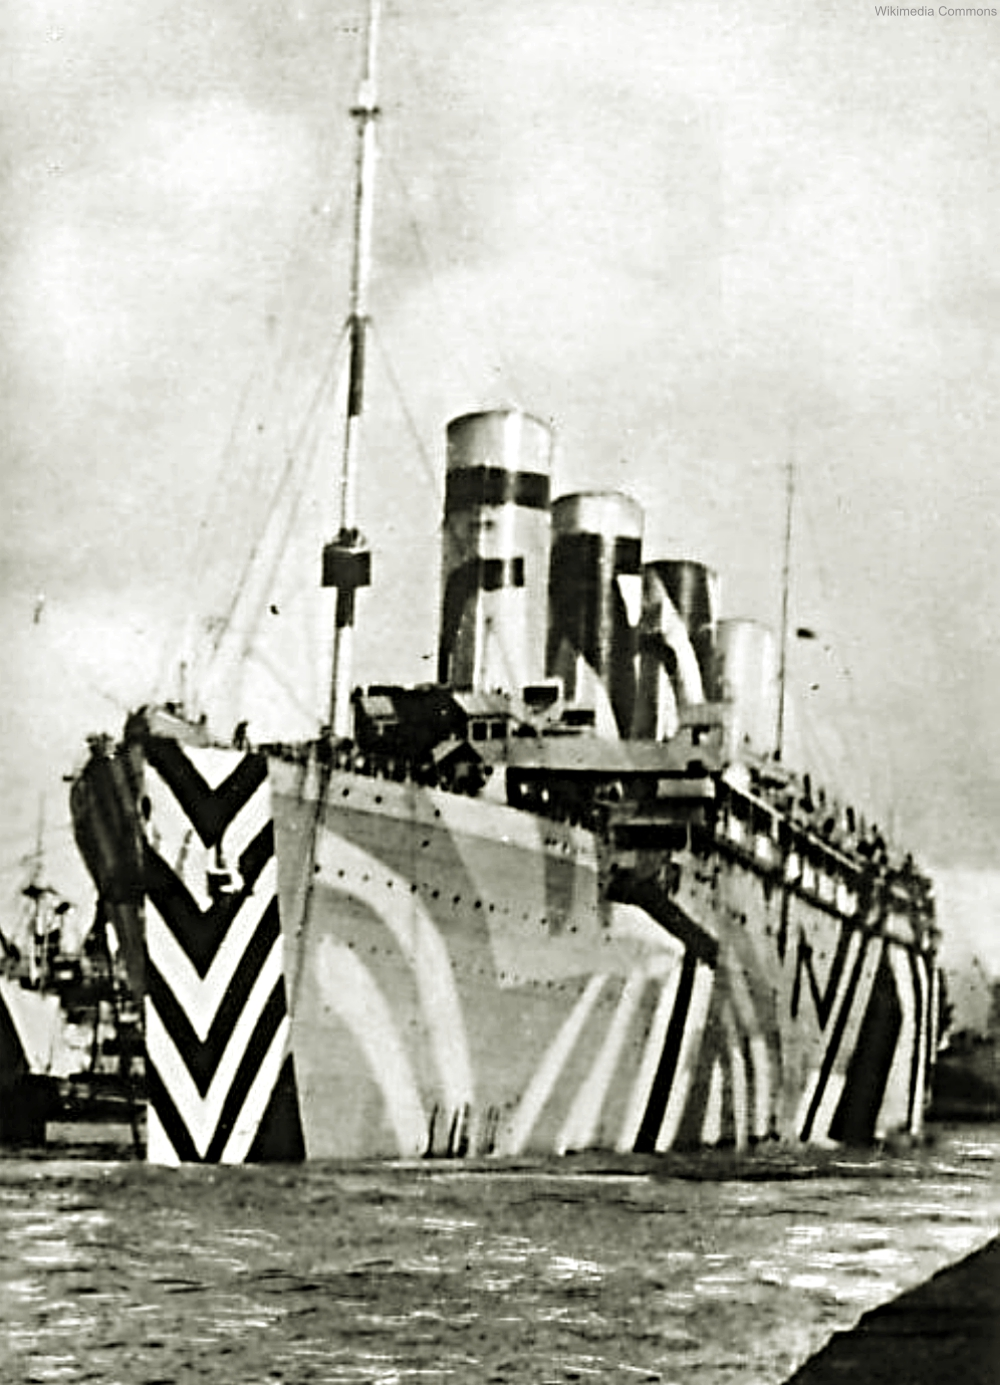 RMS Olympic in dazzle paint.